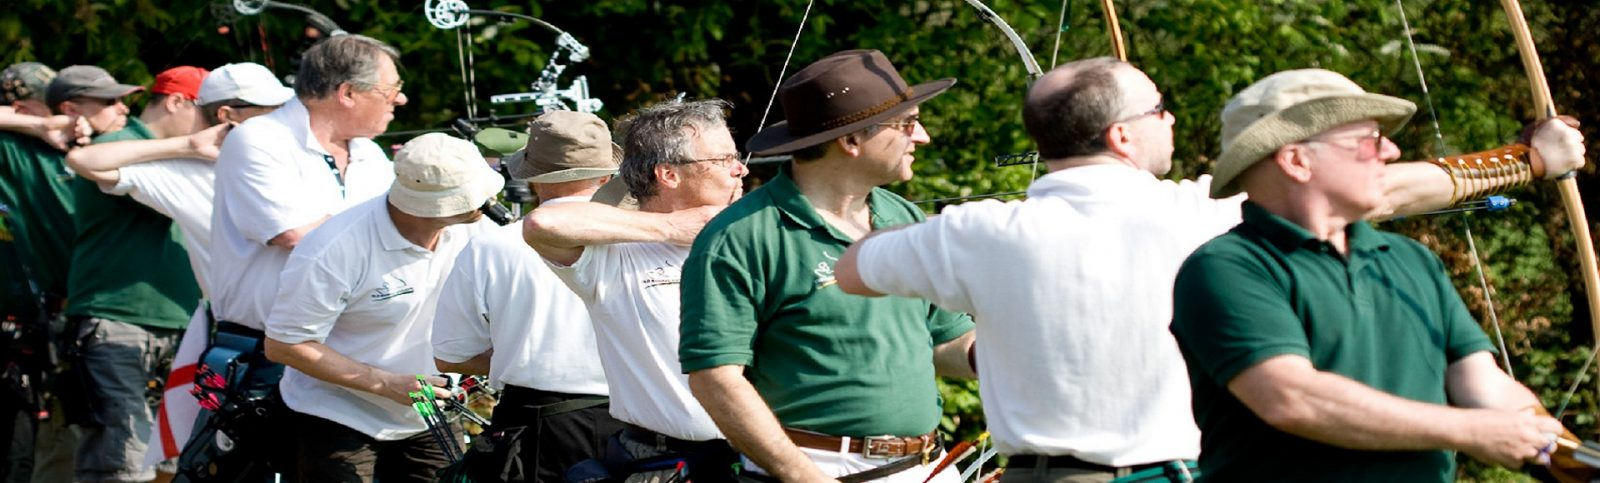 Archery: The ultimate sport for all